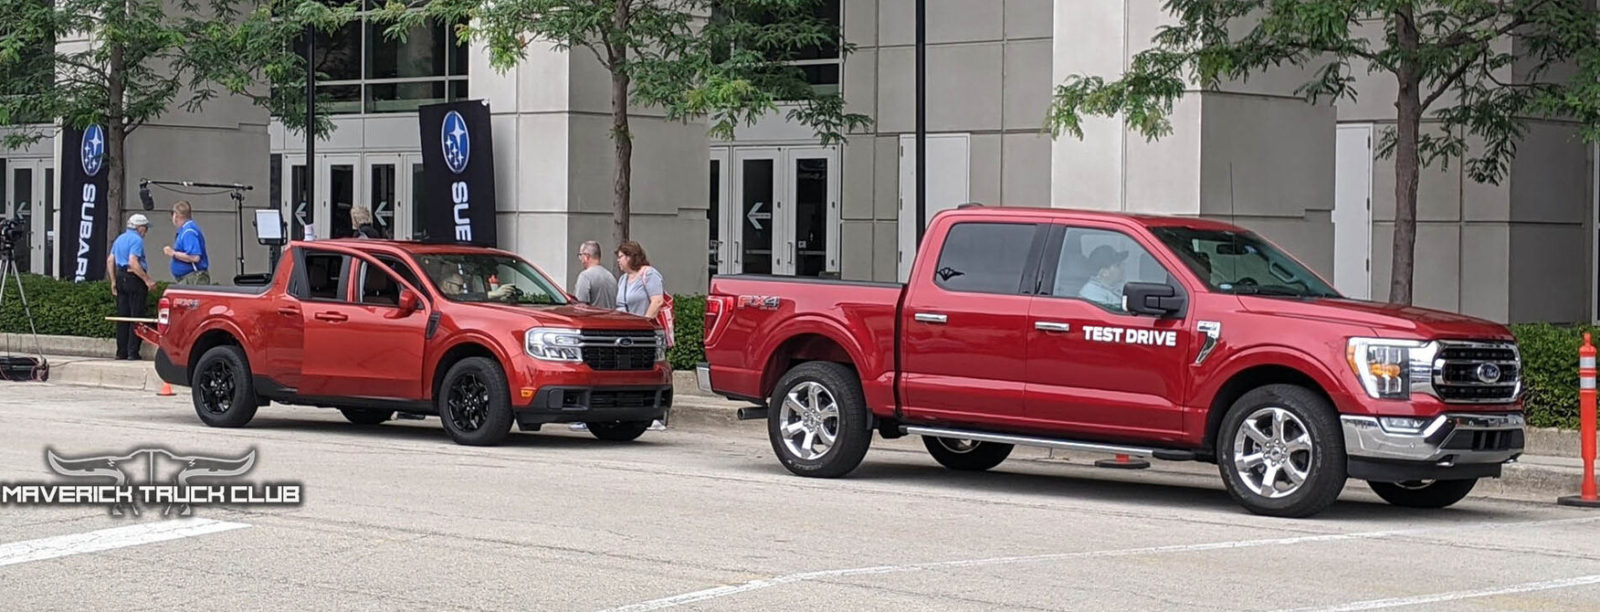 spotted-2022-ford-maverick-and-f-150-show-crimson-paint-and-size-differences